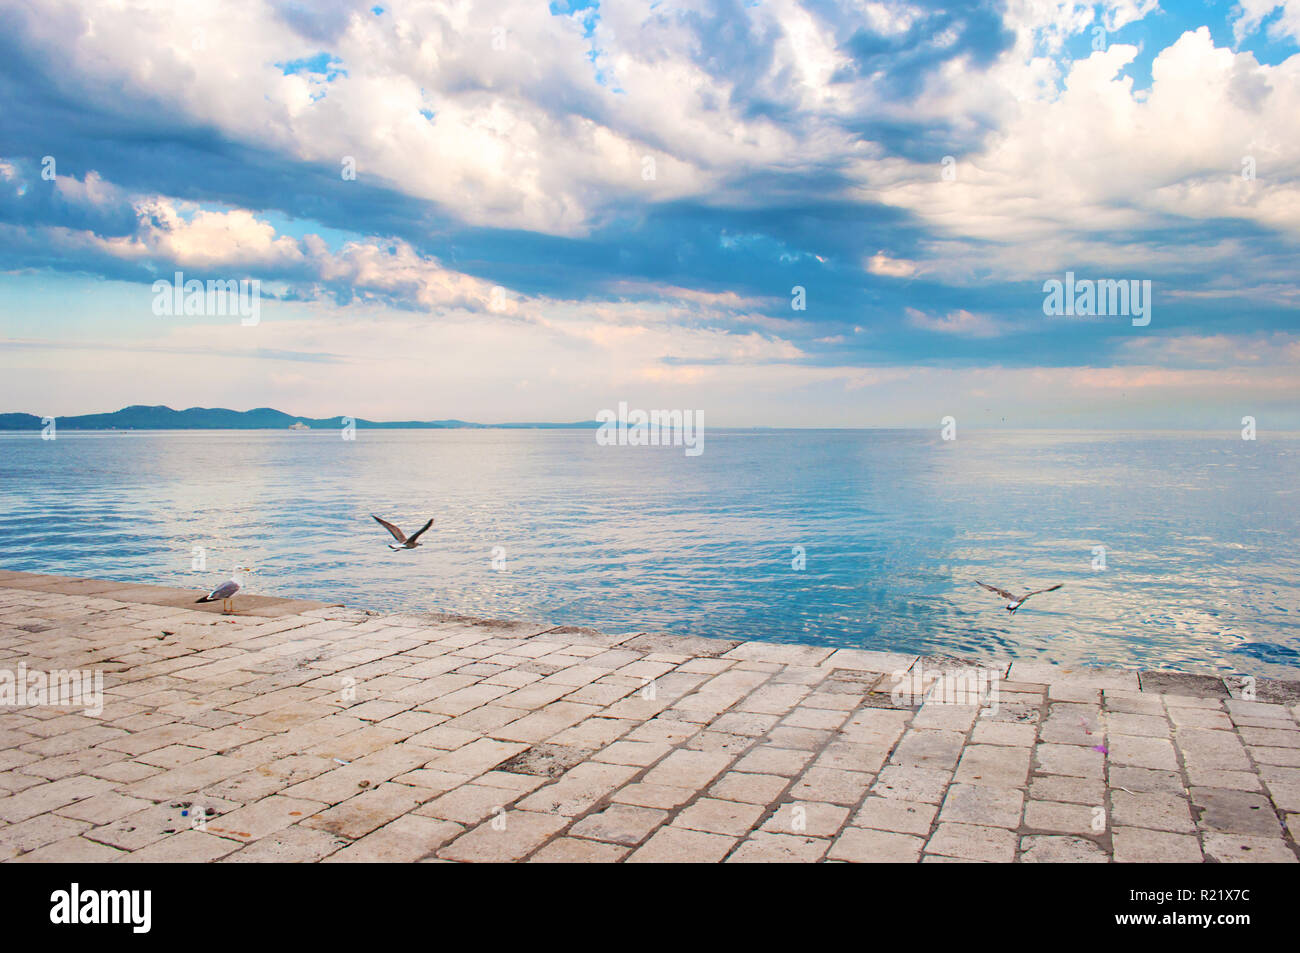 Seagulls flying low above stone tiles pavement near the sea shore against the background of a hill range and dramatic cloudy morning sky. Zadar, Croat - Stock Image